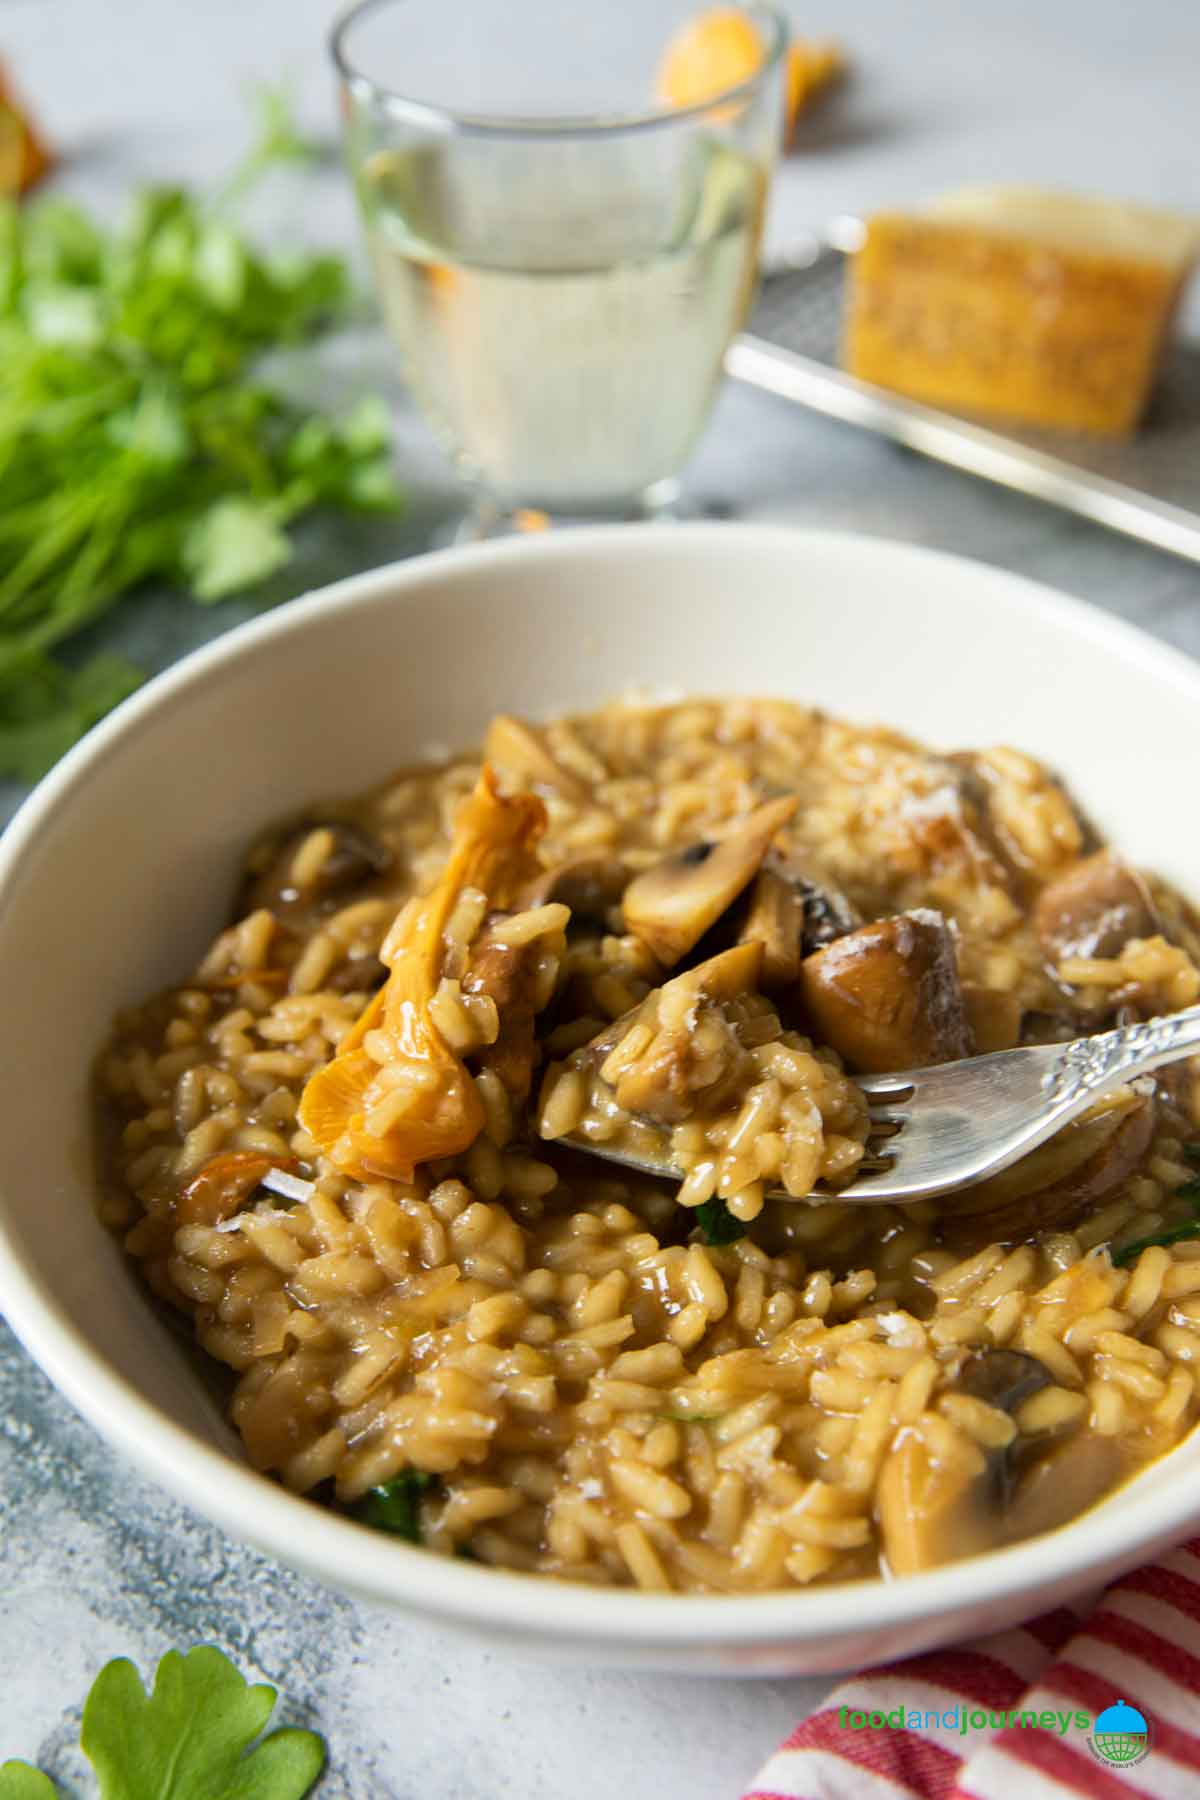 A closer shot of a serving of risotto with mushrooms, highlighting the creaminess of the rice and the bits of mushrooms in there.